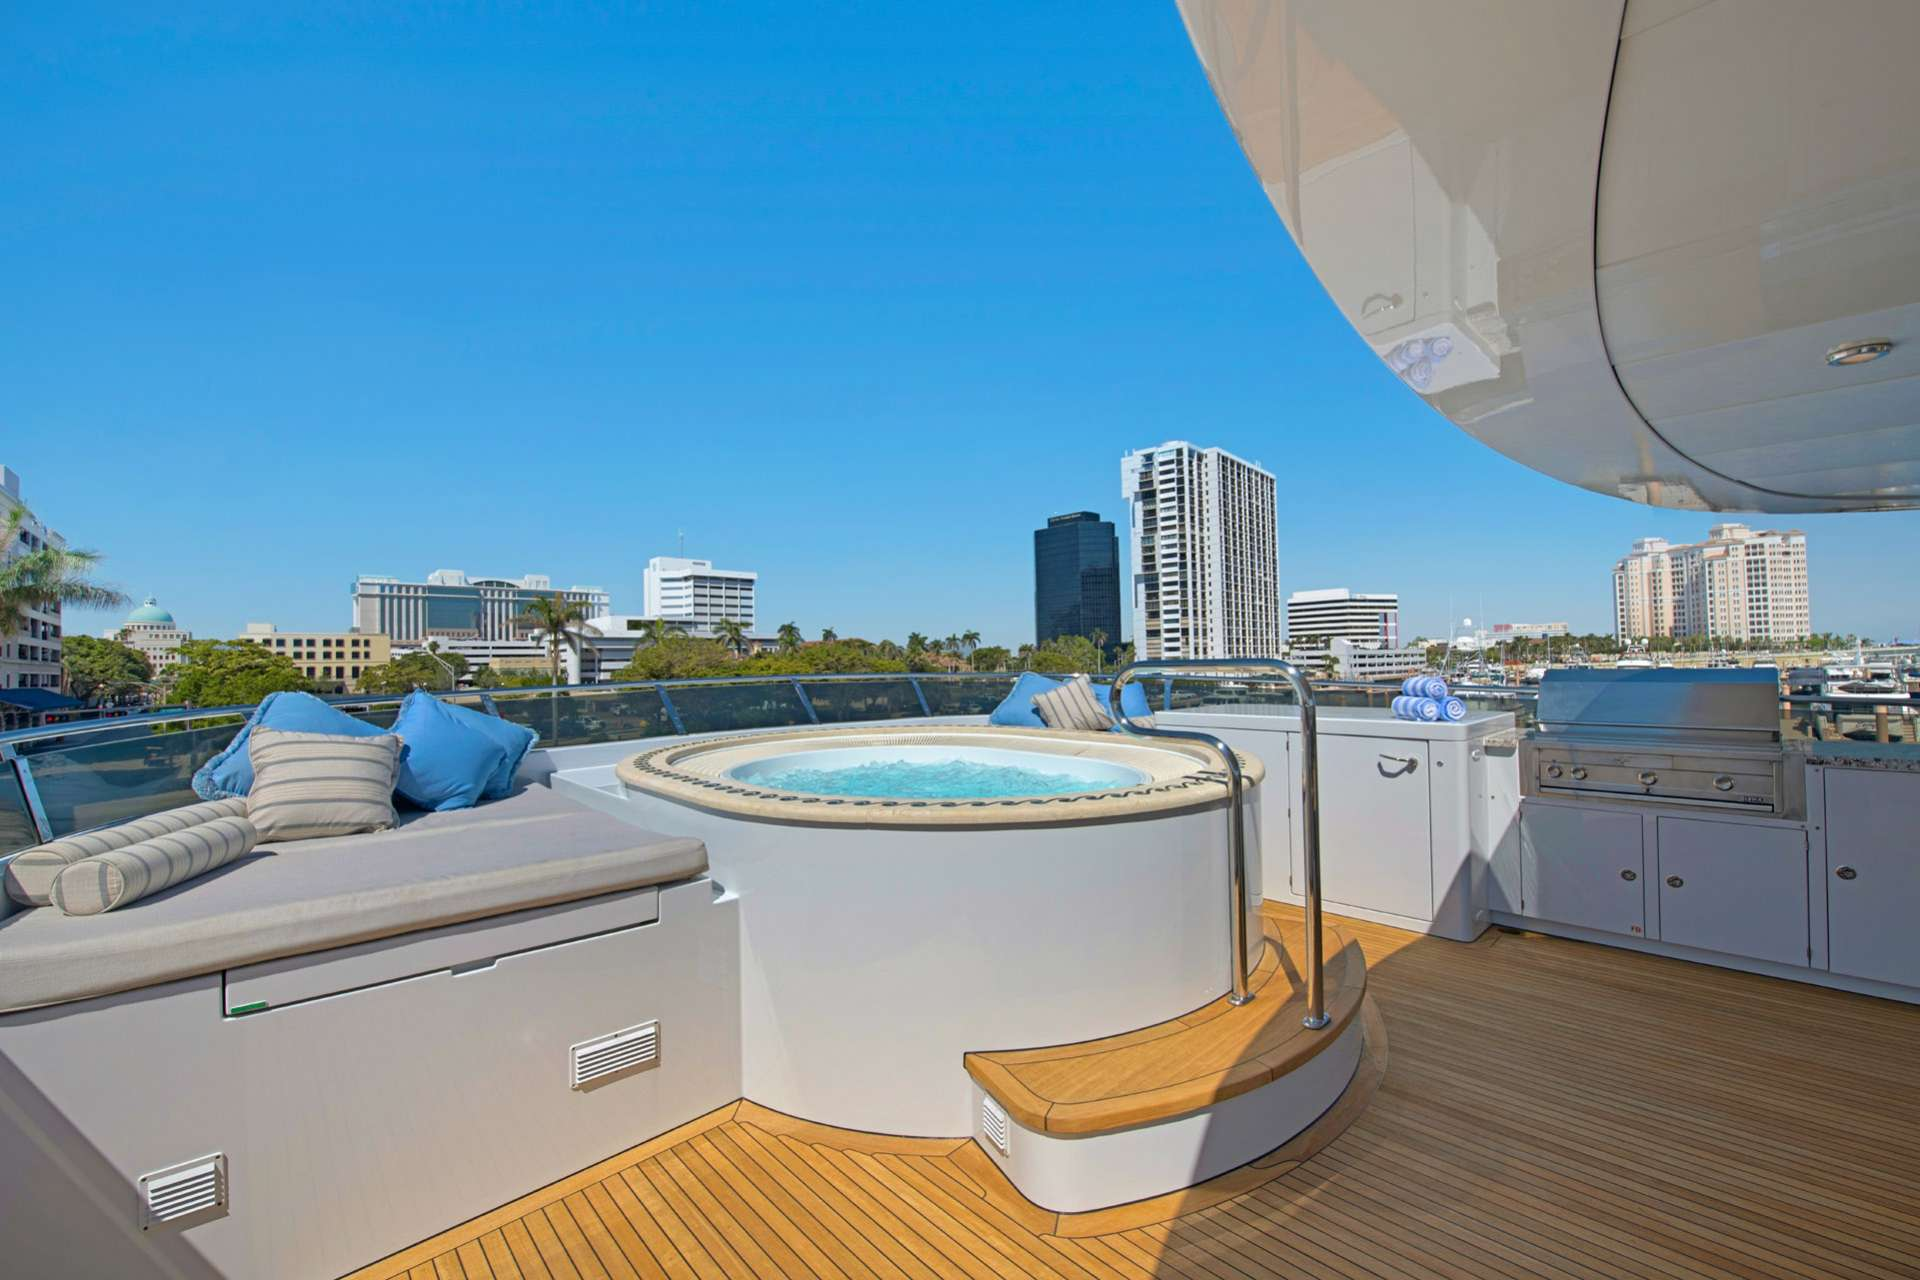 motor yacht TOP FIVE